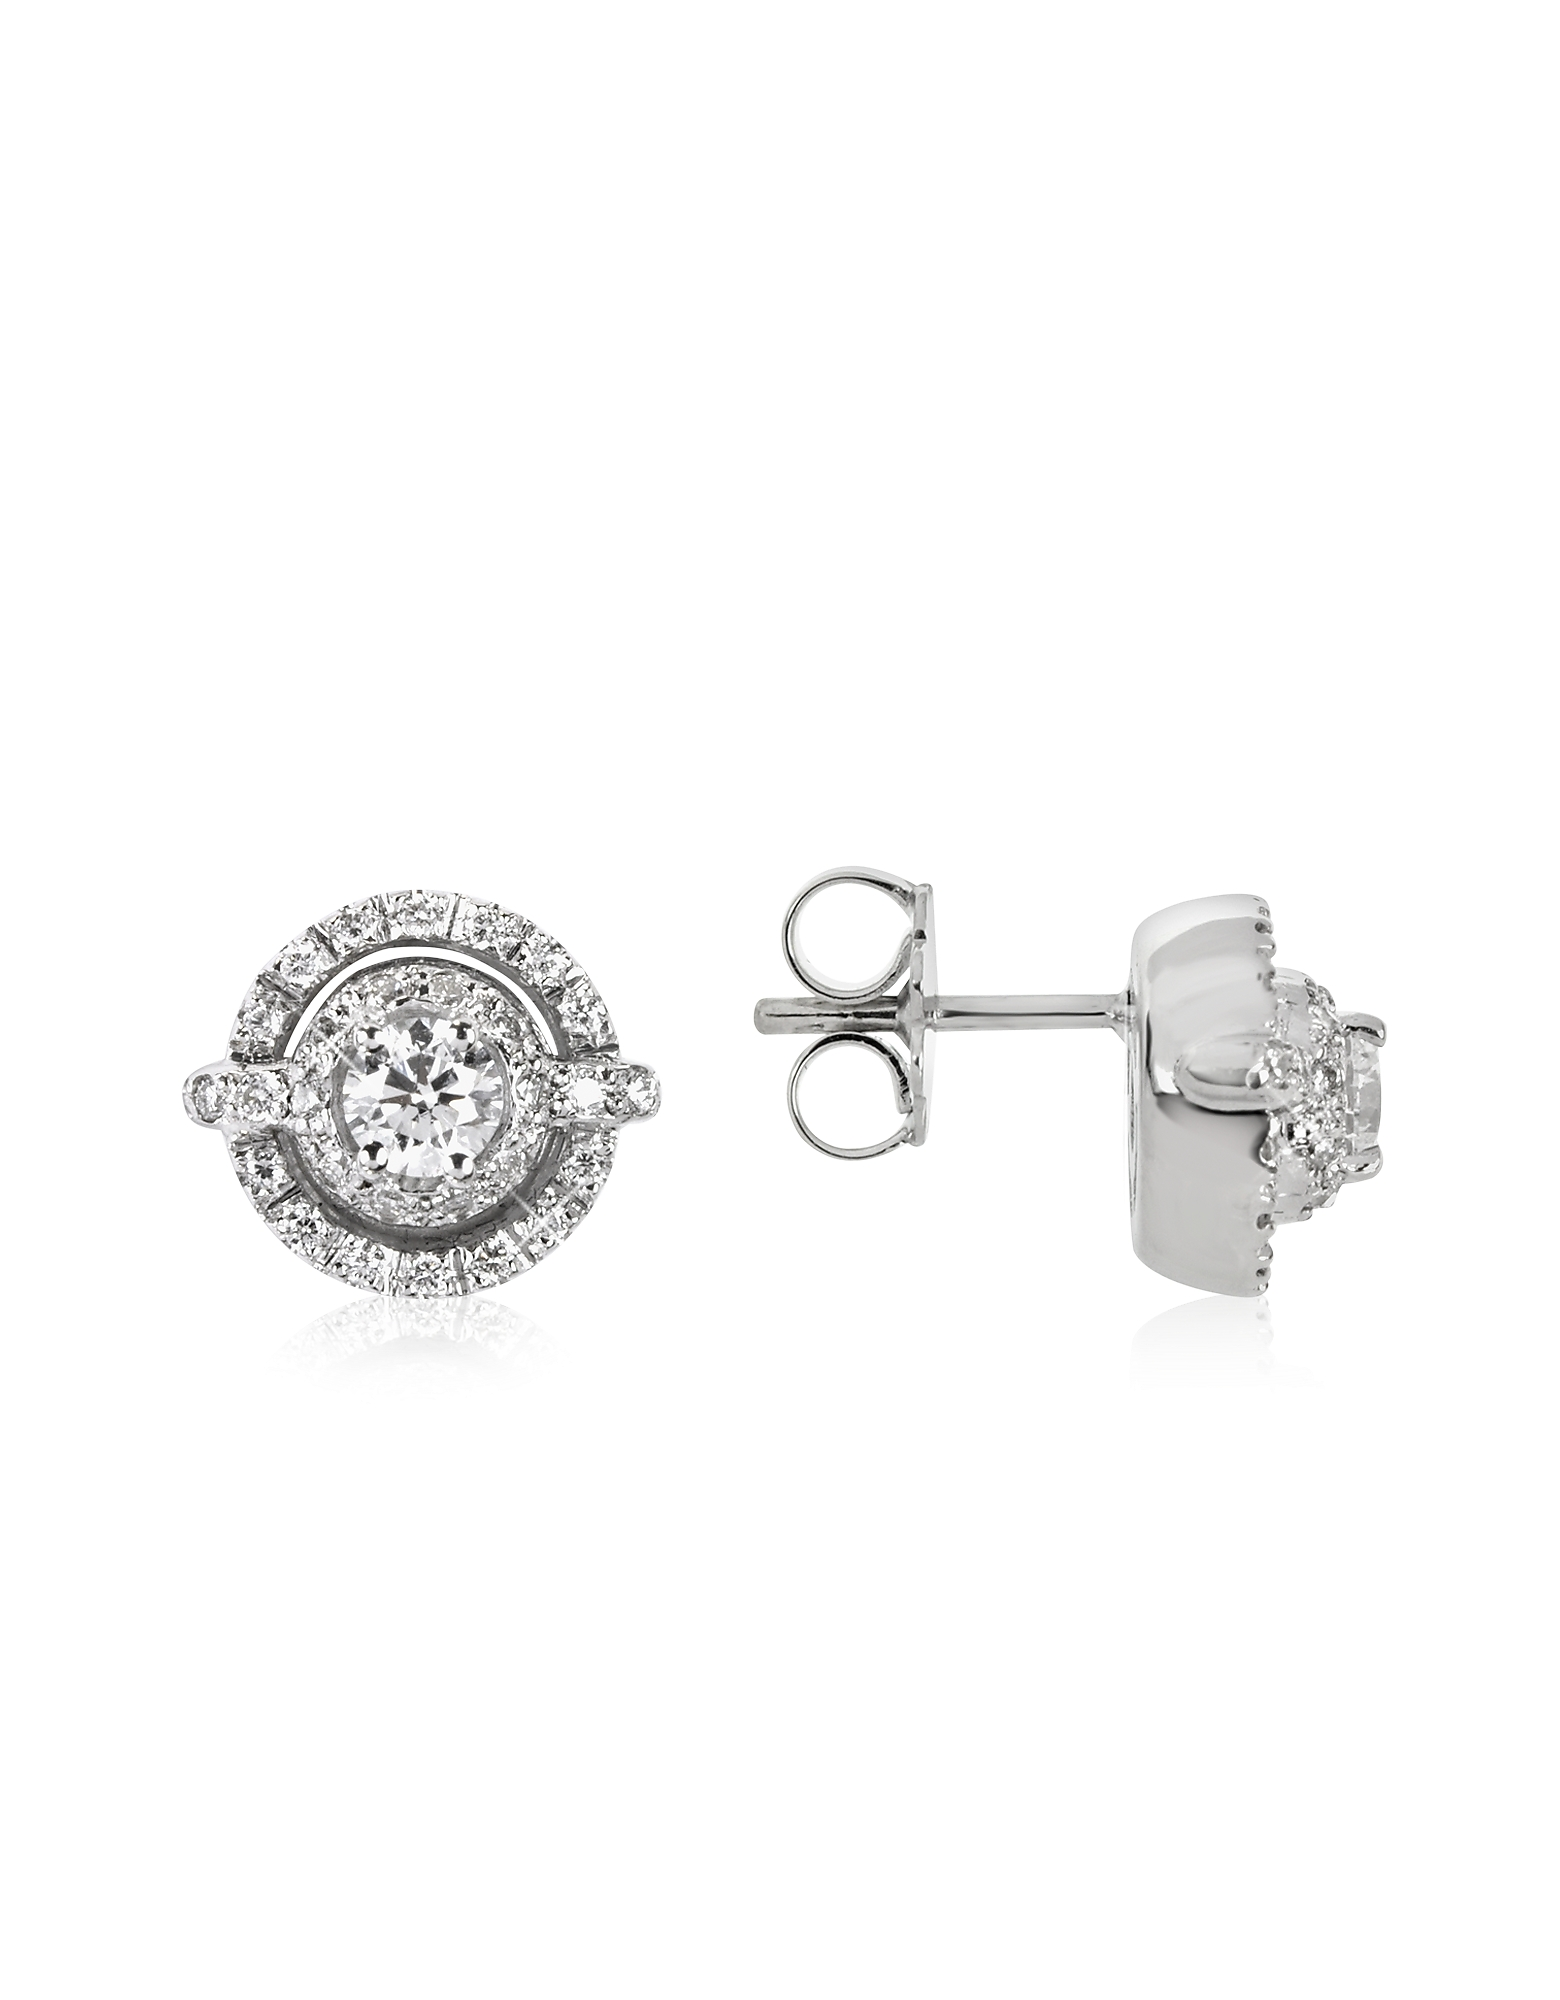 Forzieri Earrings, 0.84 ctw Diamond 18K White Gold Earrings